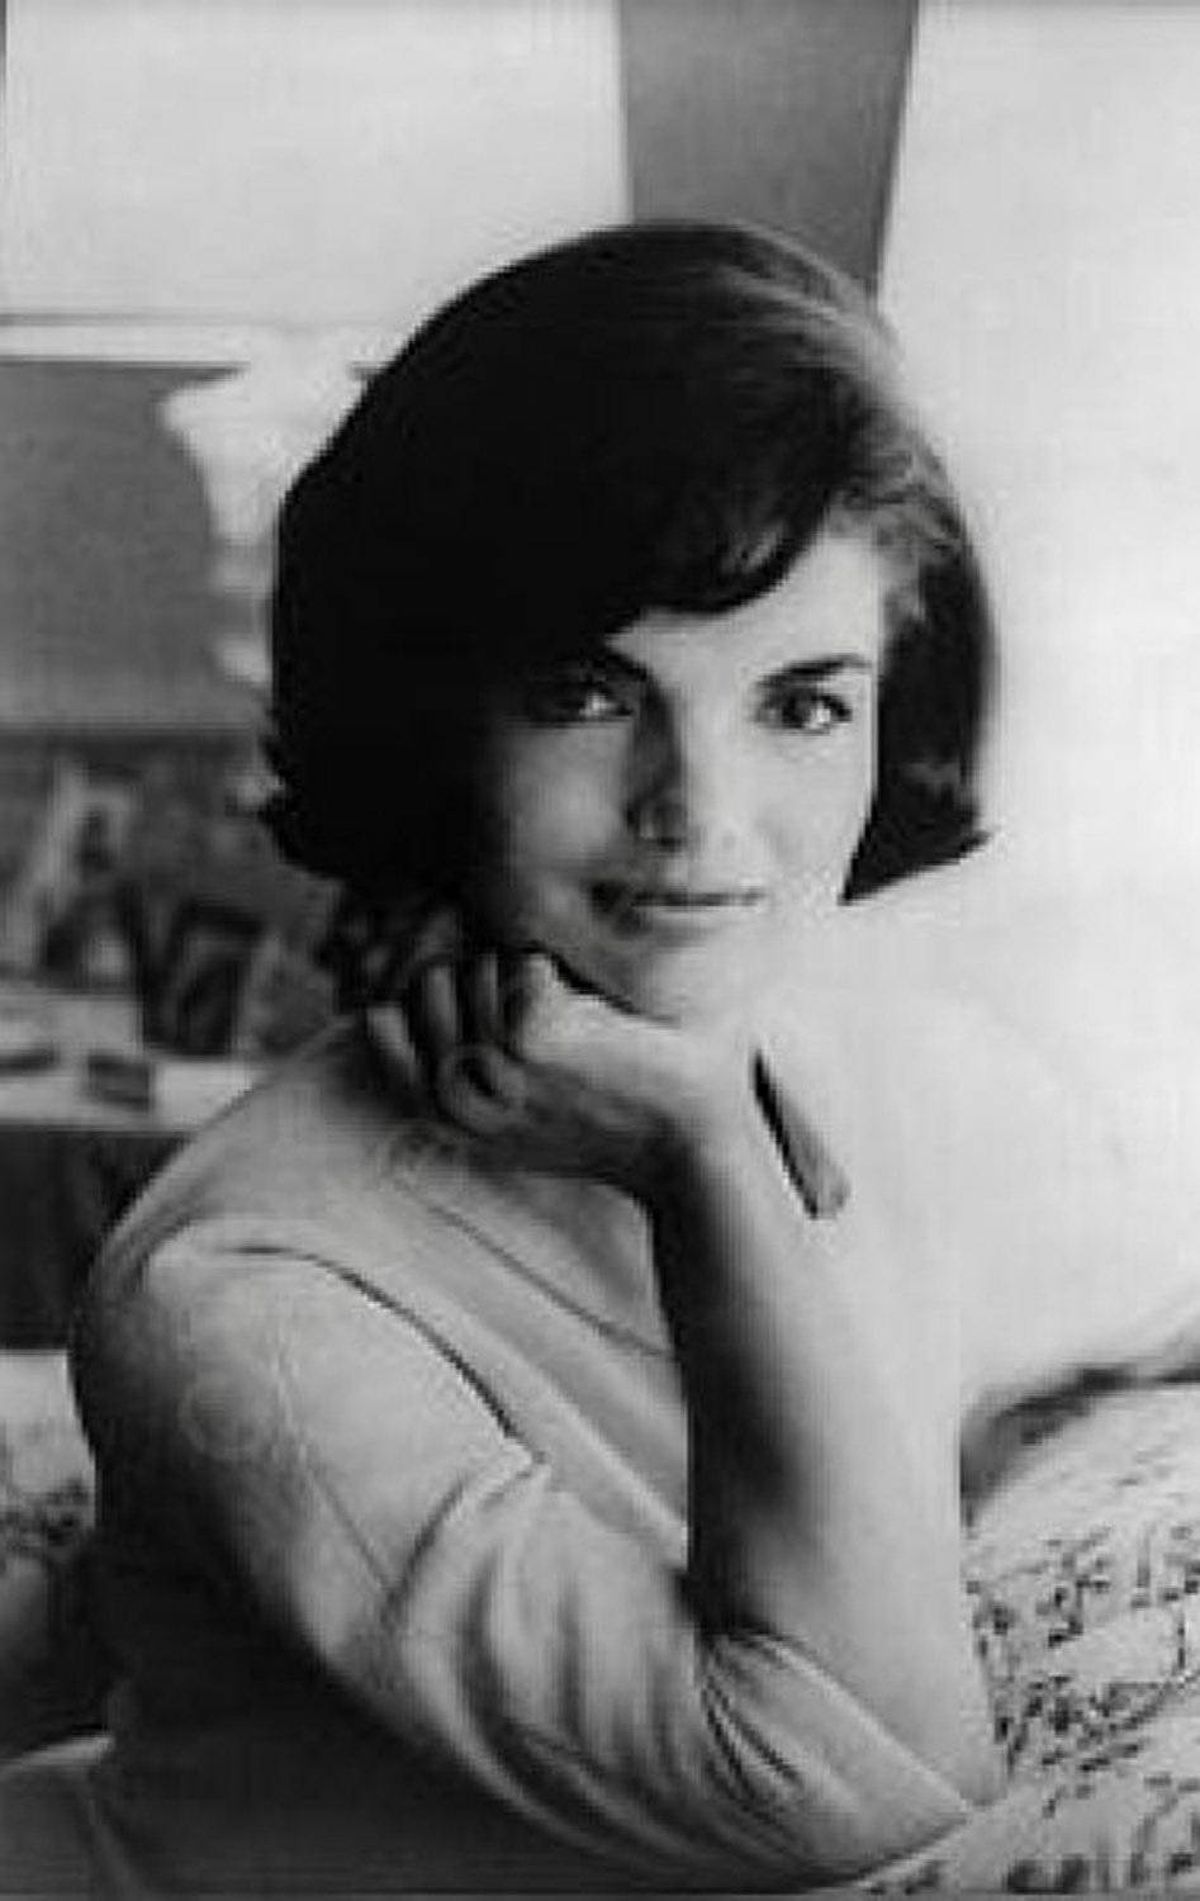 NEWS Jacqueline Kennedy: In Her Own Words ABC, CTV Two, 9 p.m. Expect this show to raise the hackles of some U.S. viewers. Timed to coincide with this week's publication of Jacqueline Kennedy: Historic Conversations on Life with John F. Kennedy, the program will feature recorded interviews of conversations between the former first lady and historian Arthur Schlesinger Jr. that took place shortly after JFK's assassination in November, 1963. Among other revelations, the program is expected to feature Jackie discussing her belief that gunman Lee Harvey Oswald was a patsy for Texas tycoons in a plot to murder her husband. Diane Sawyer hosts.